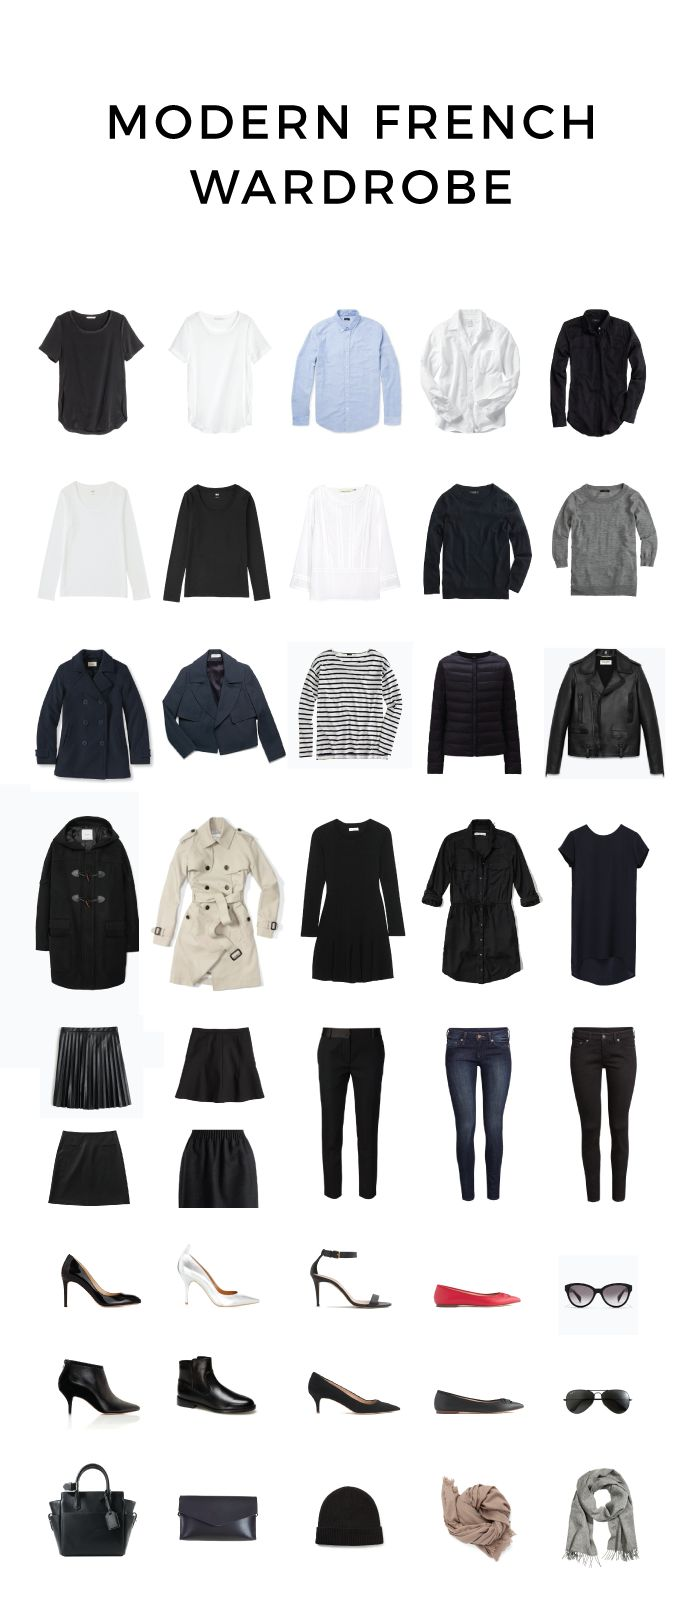 1 000 french canadian clothing french canadian apparel french - Modern French Wardrobe For Fall And Winter Modernfrenchblog Com